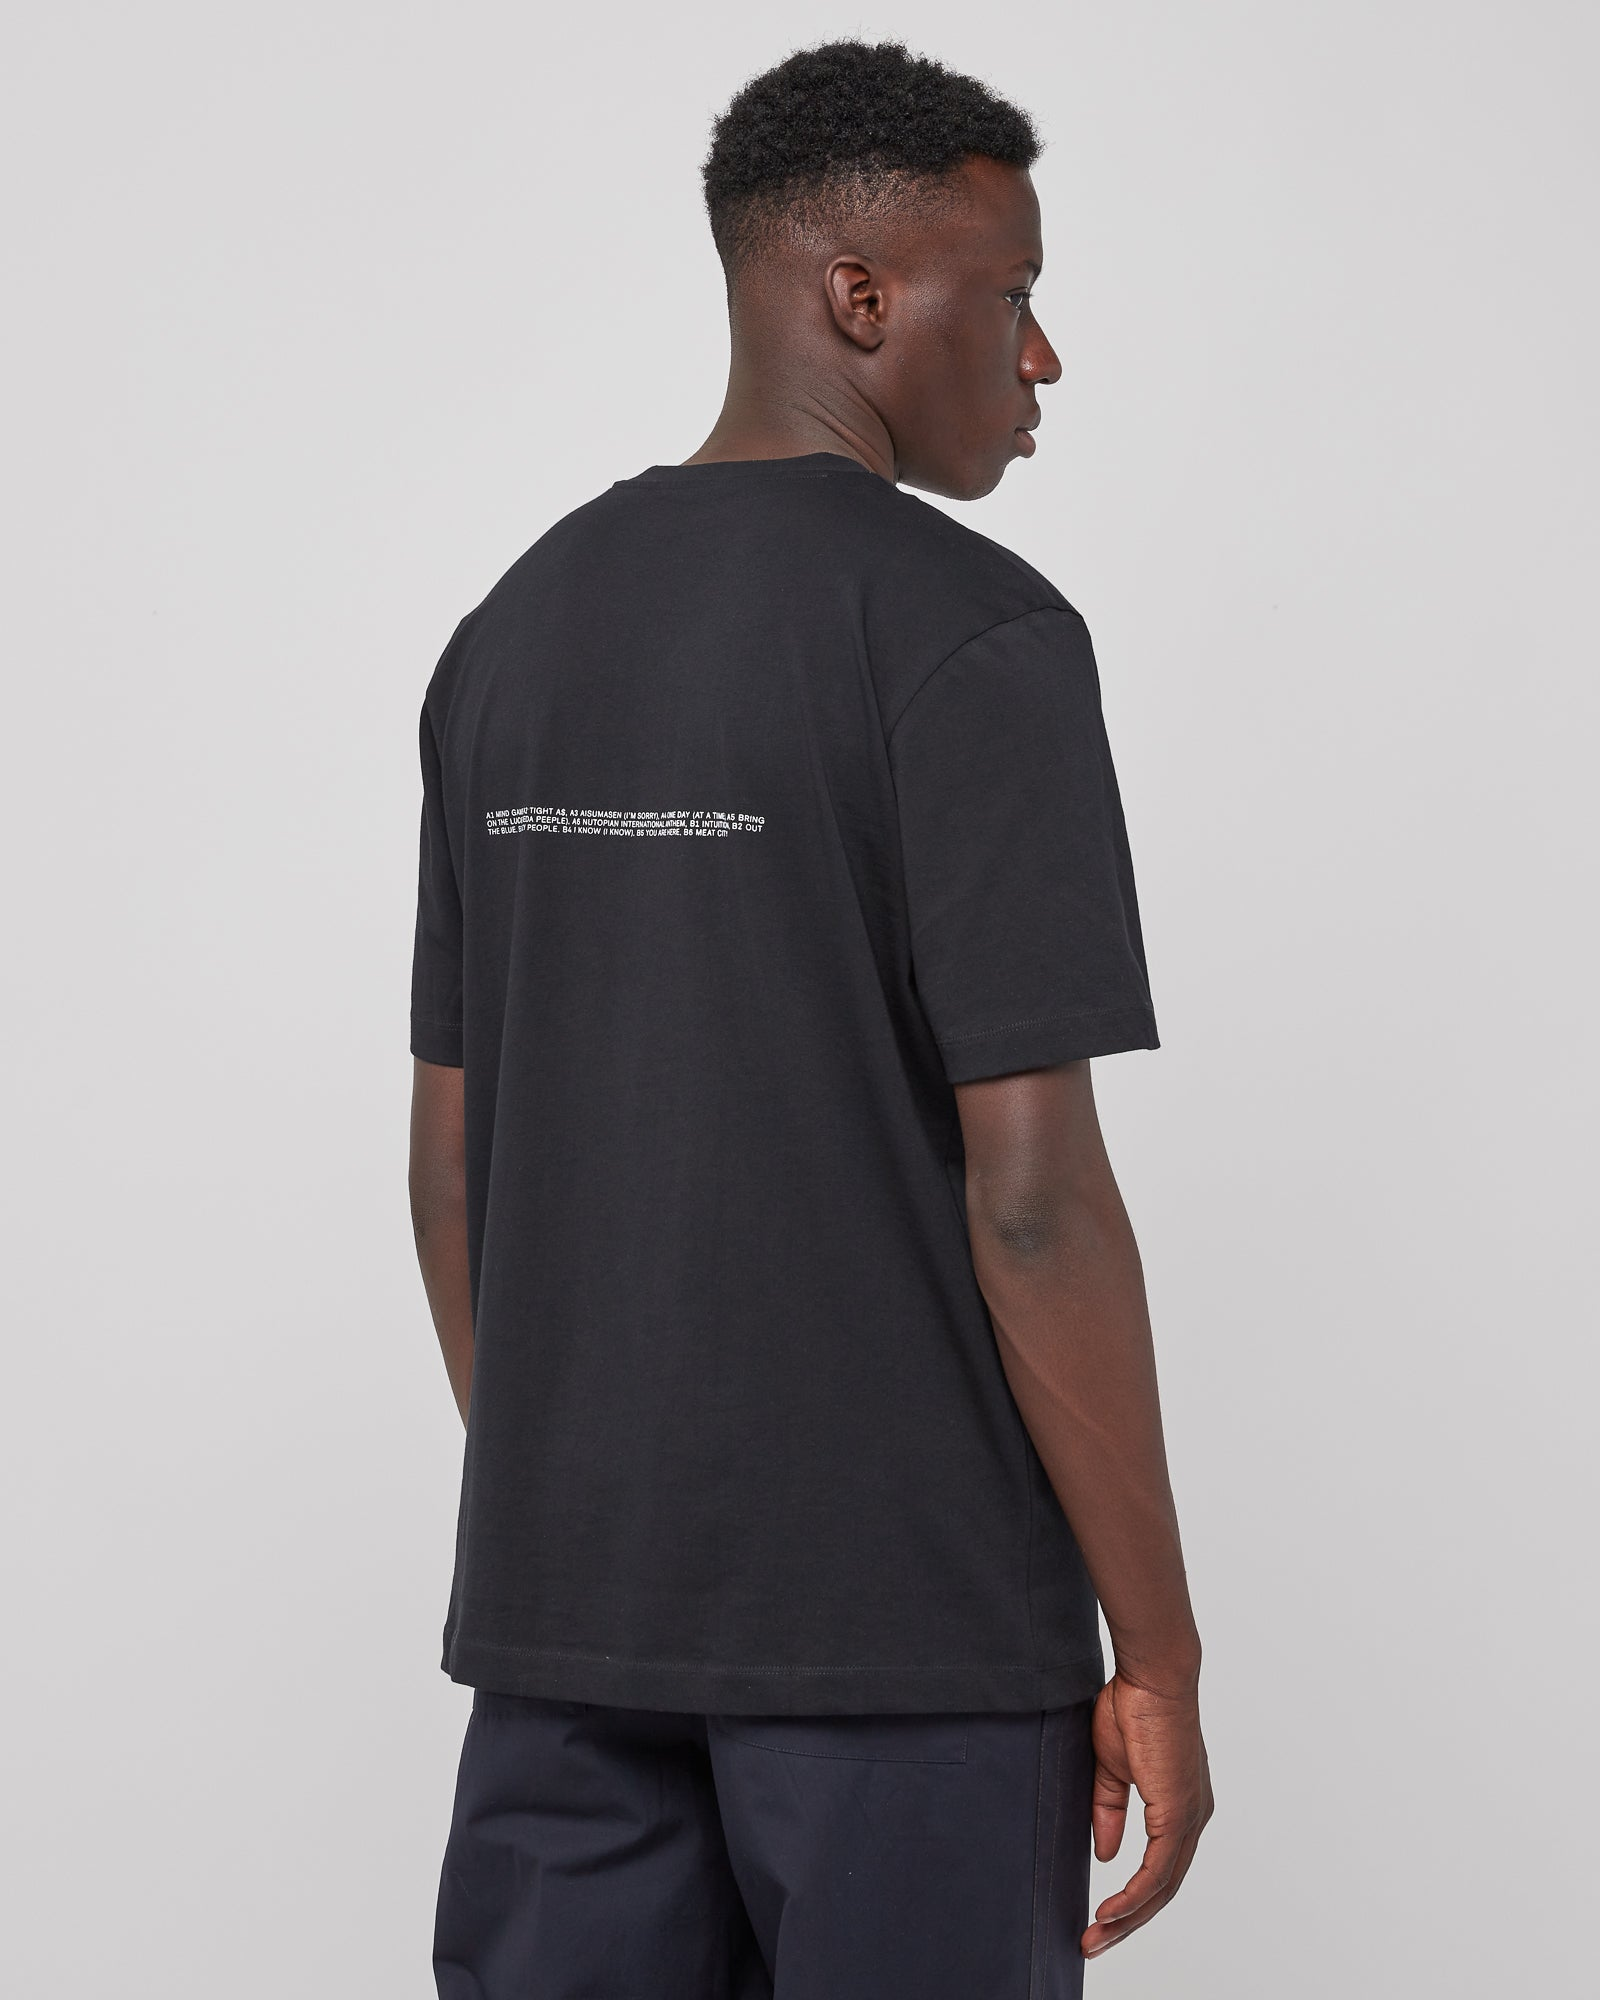 Mono T-Shirt in Black